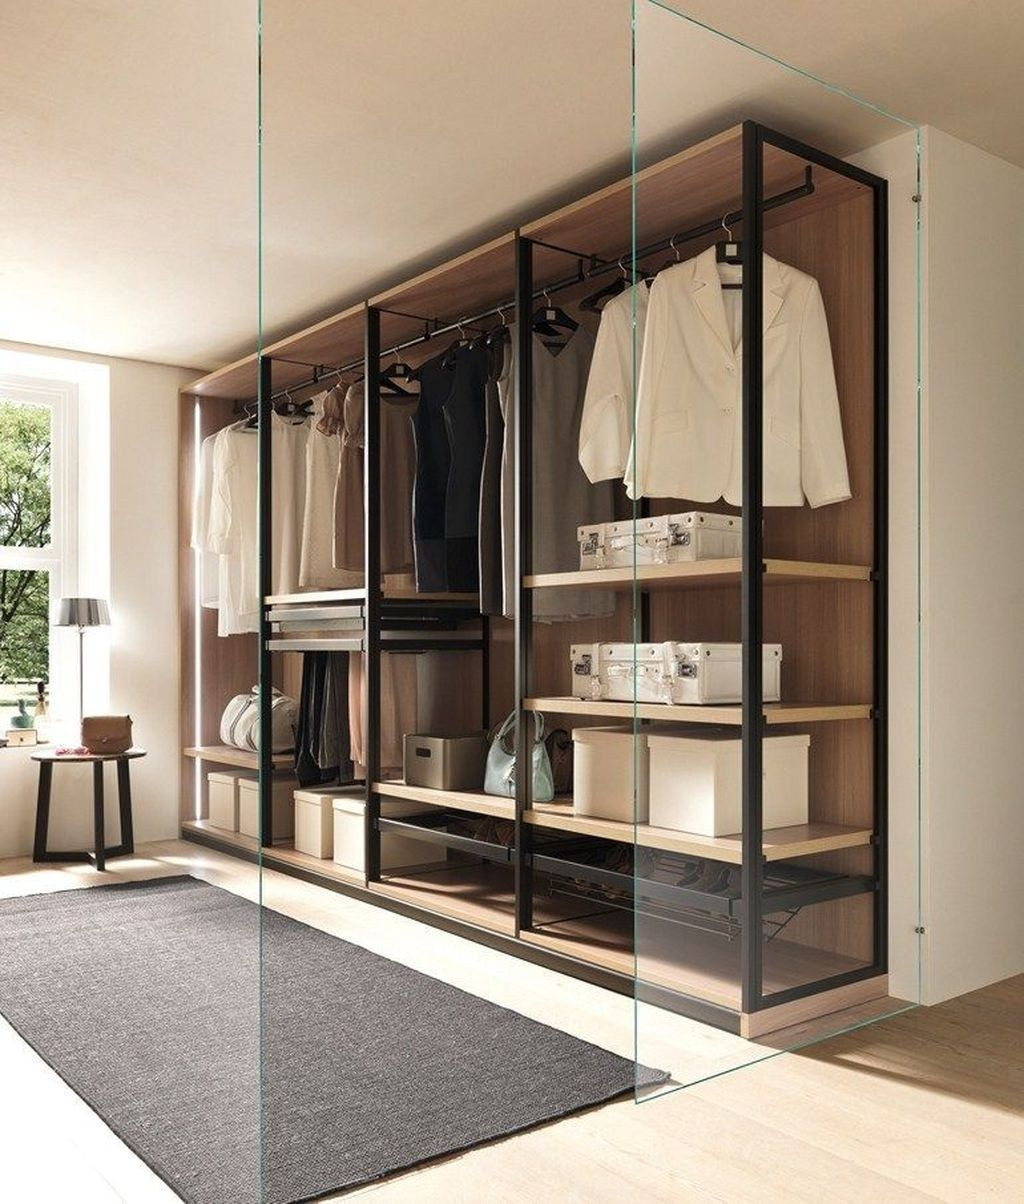 Best Wardrobe In Your Bedroom01 Closet Designs Walk In Closet Design Closet Design